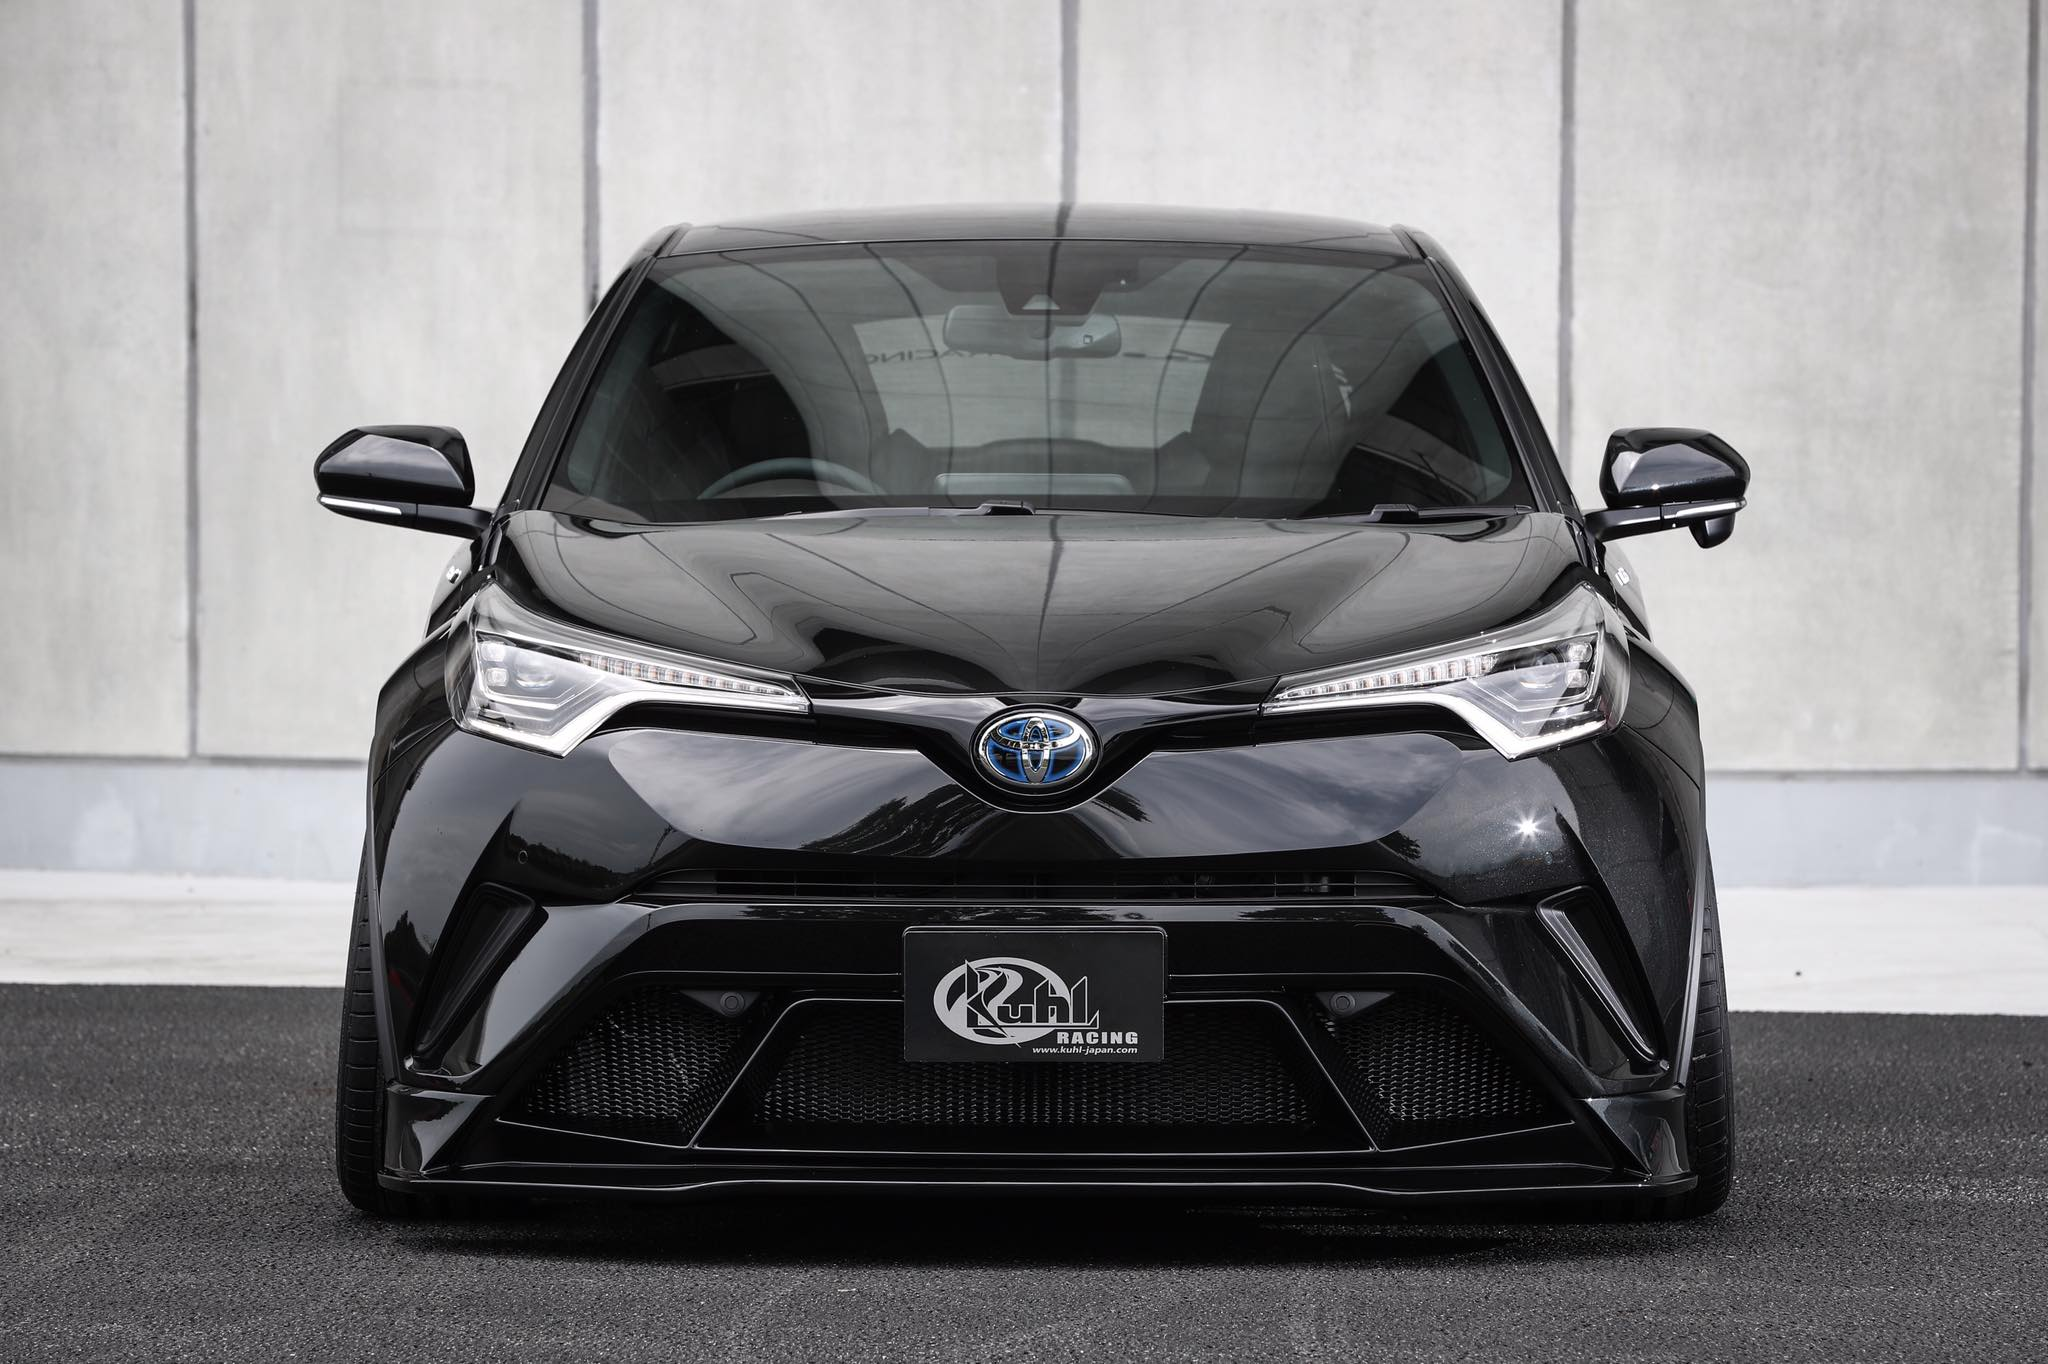 Toyota Suv Used >> Toyota C-HR shows off tuning side with Kuhl Racing bodykit ...